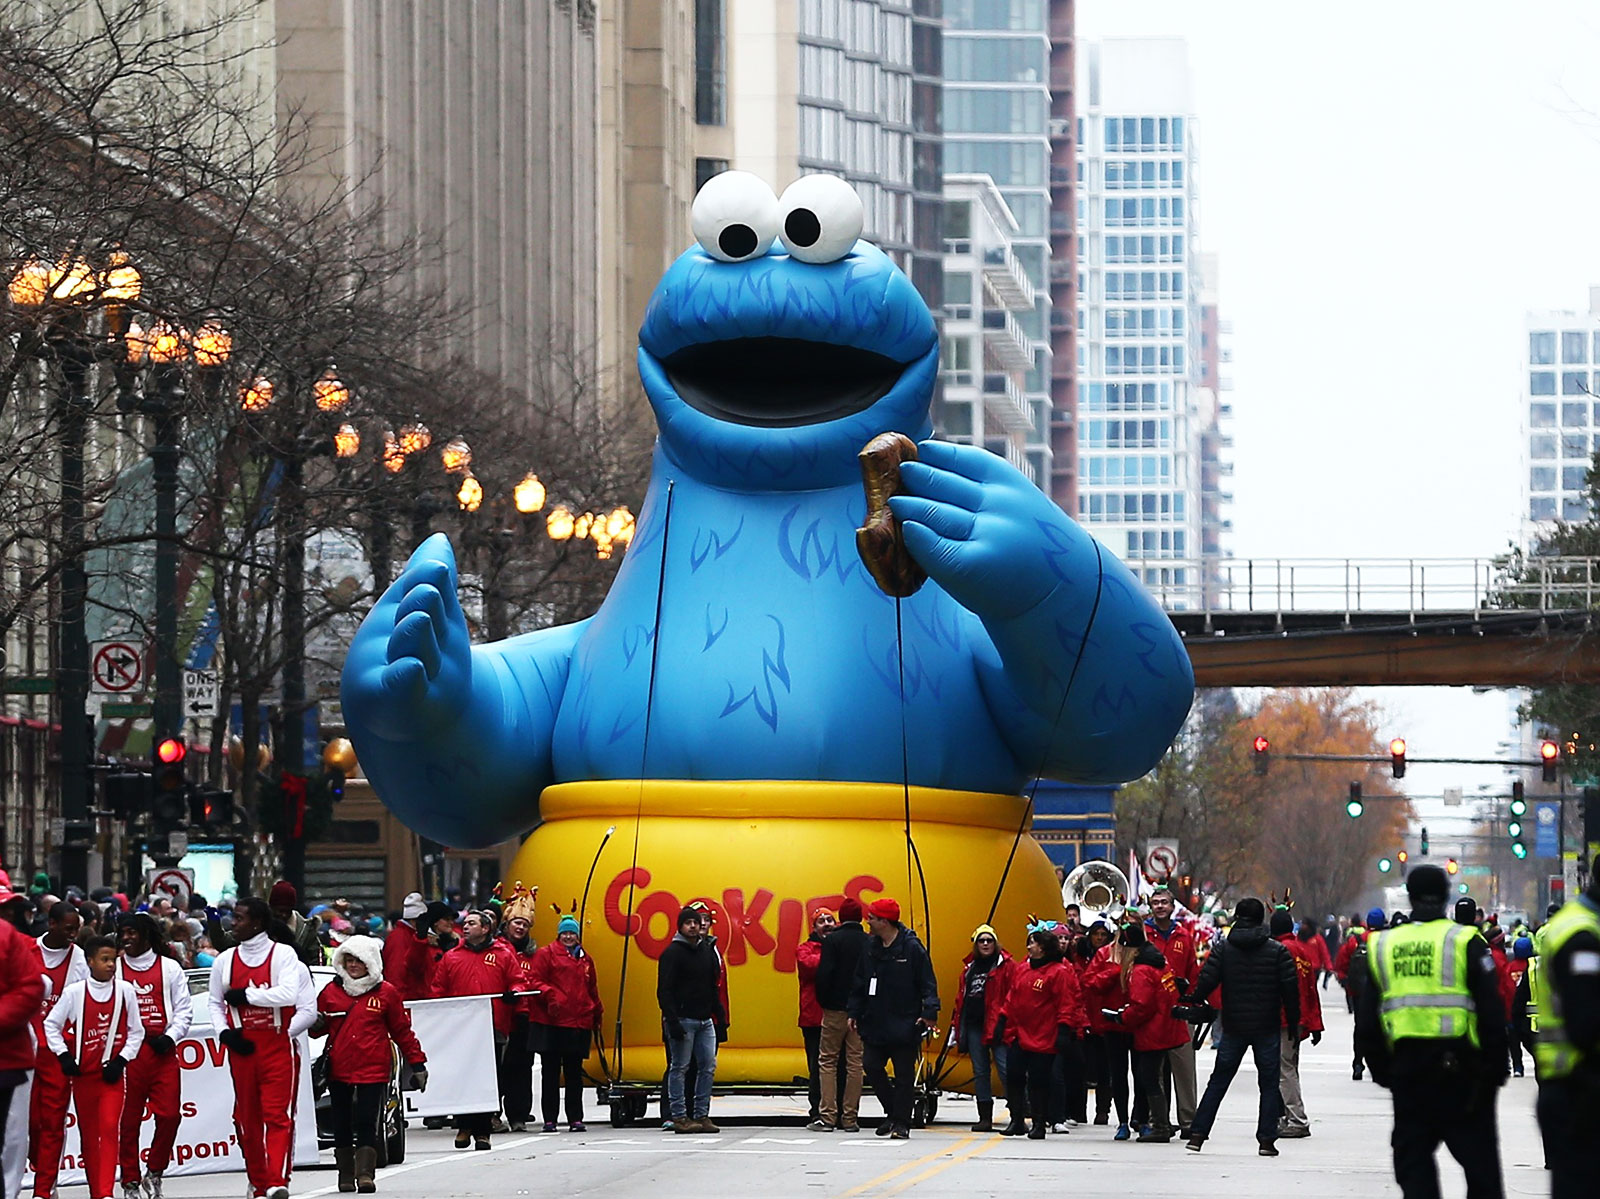 cookie monster float at parade